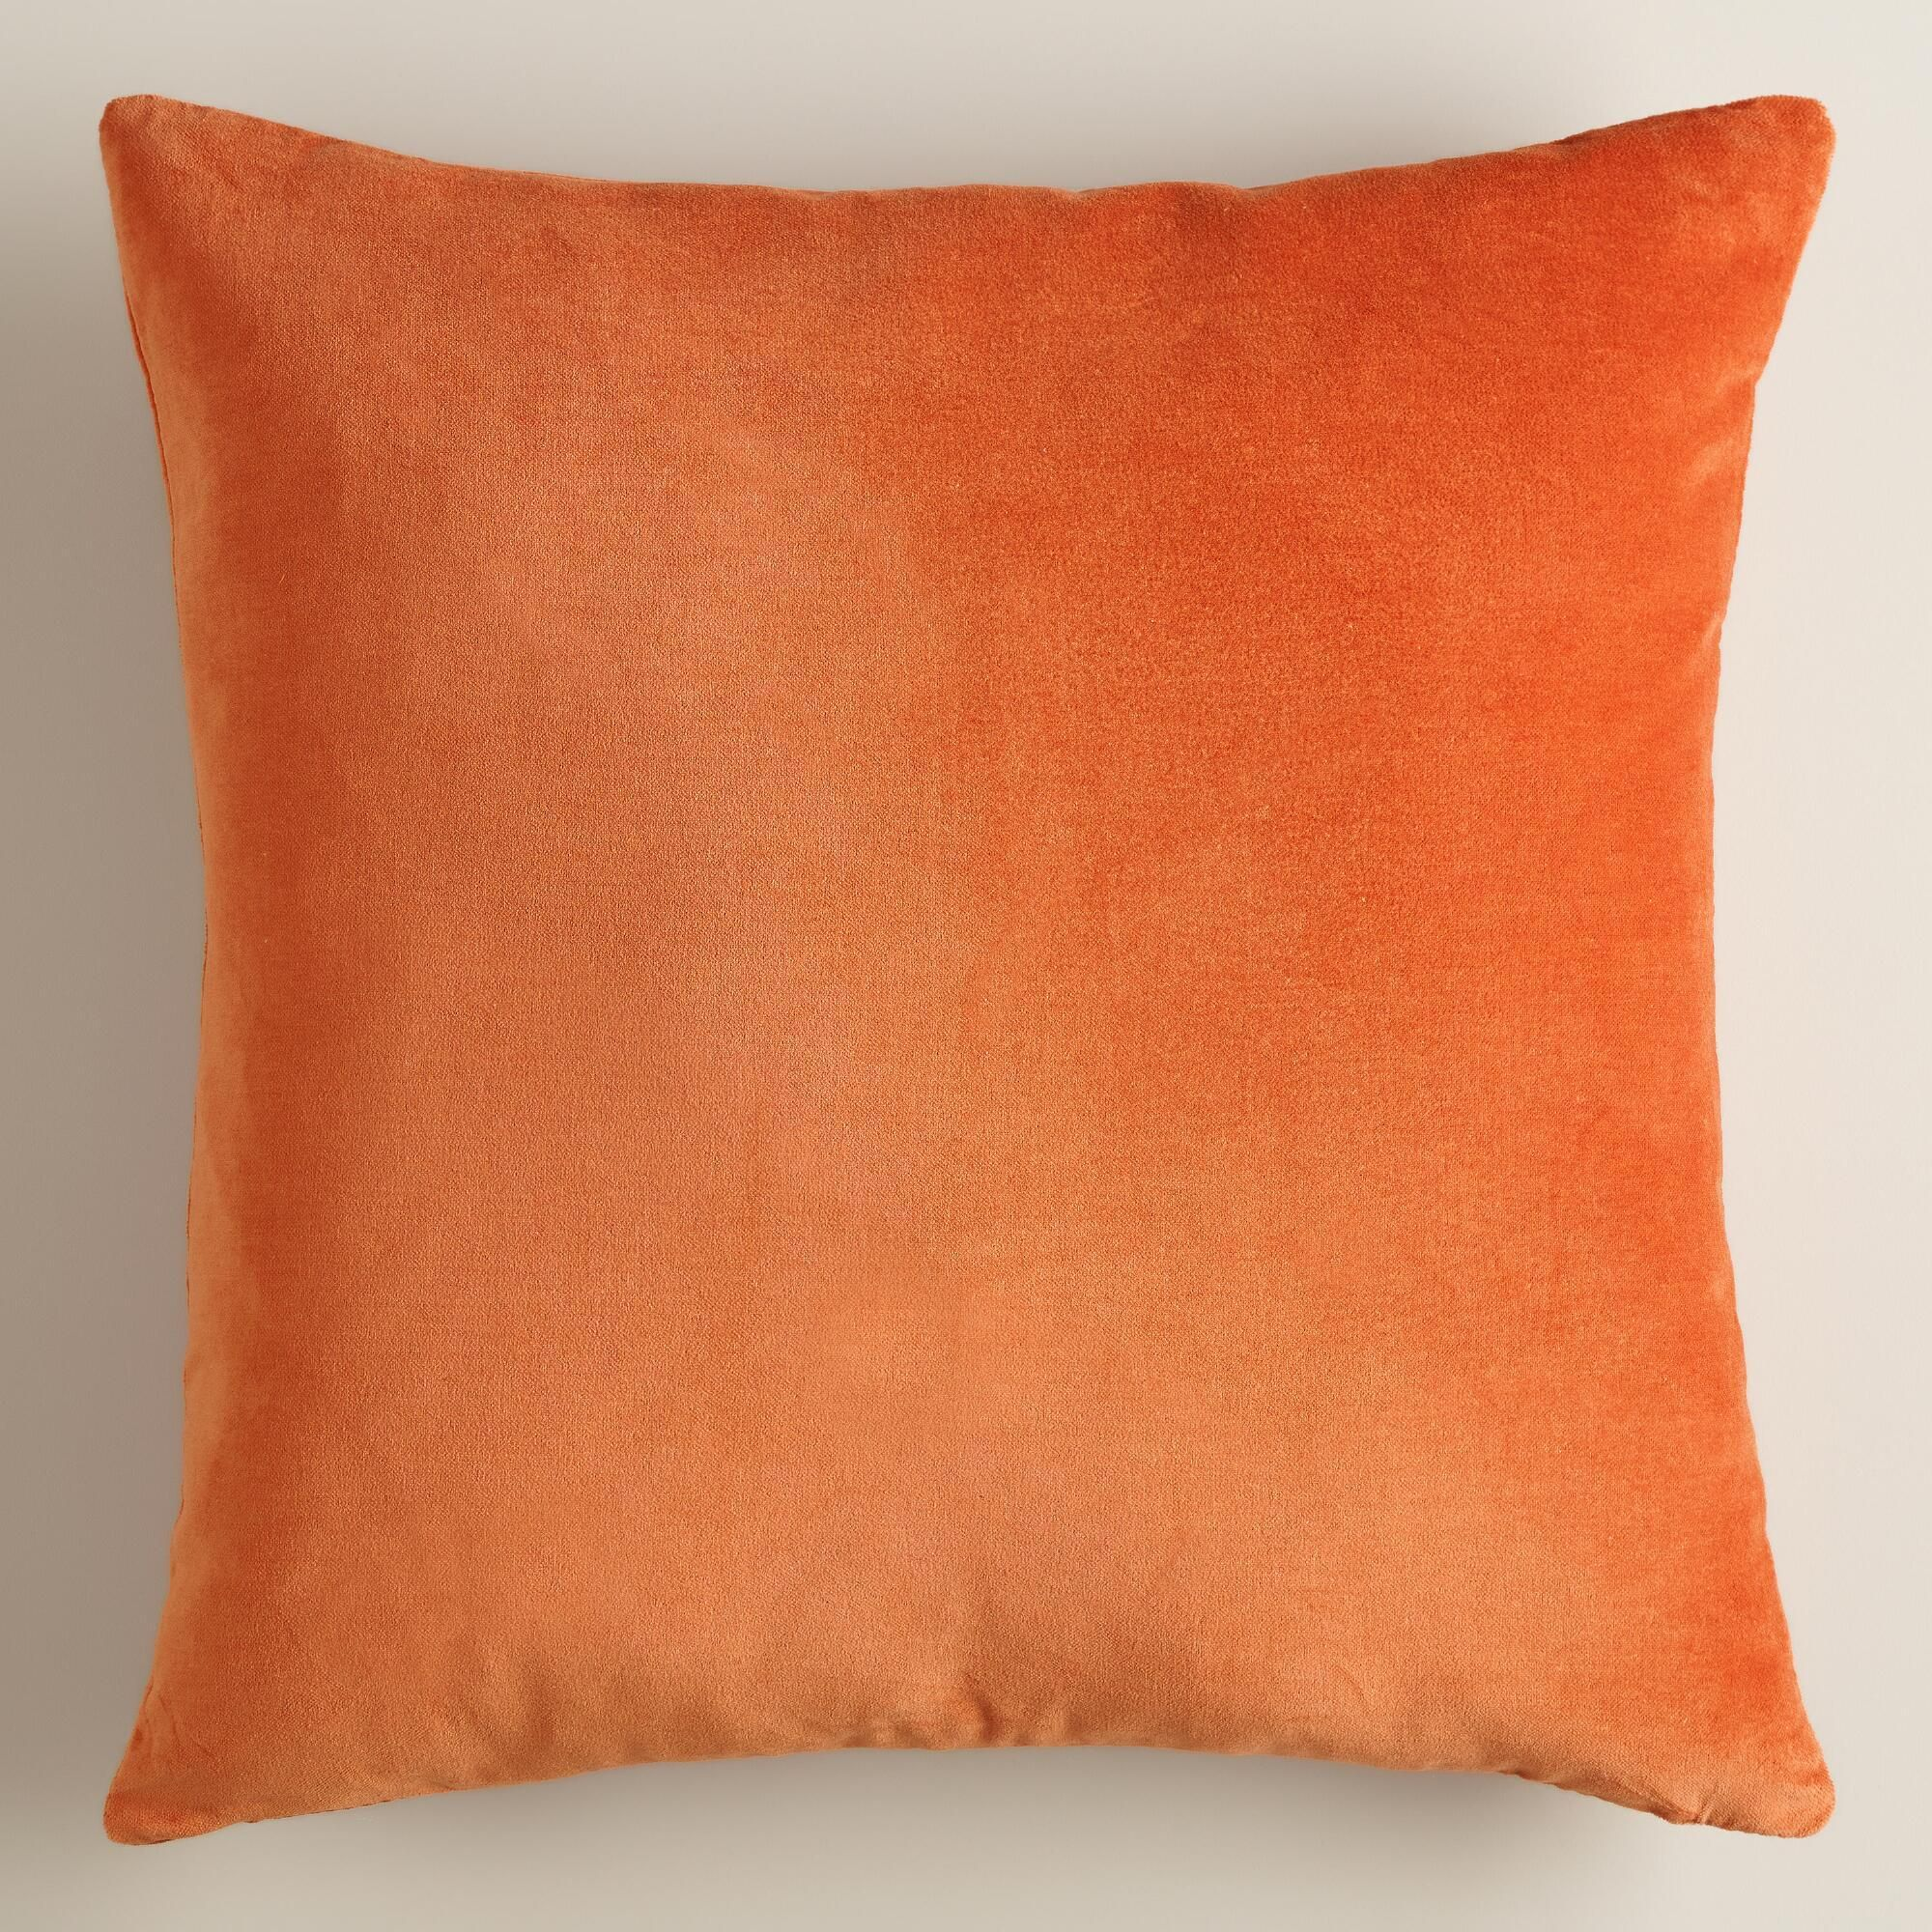 cushion pillow lumbar the lorri black pillows combine to gallery of dyner navy how orange design and red throw rule blanket